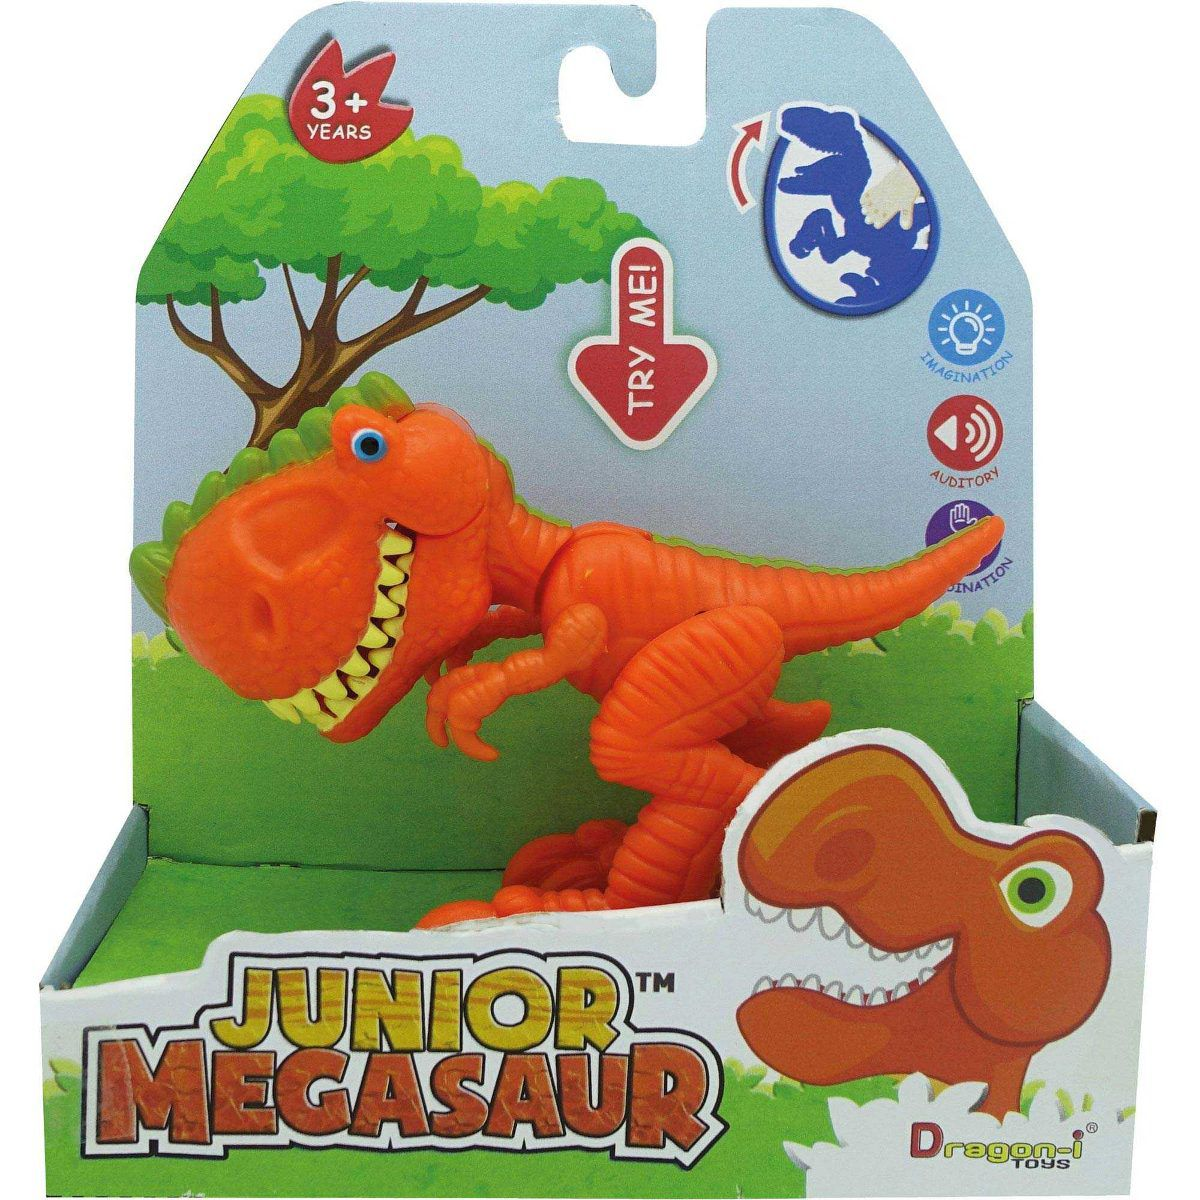 Dinossauro Junior Megasaur Mini Dino